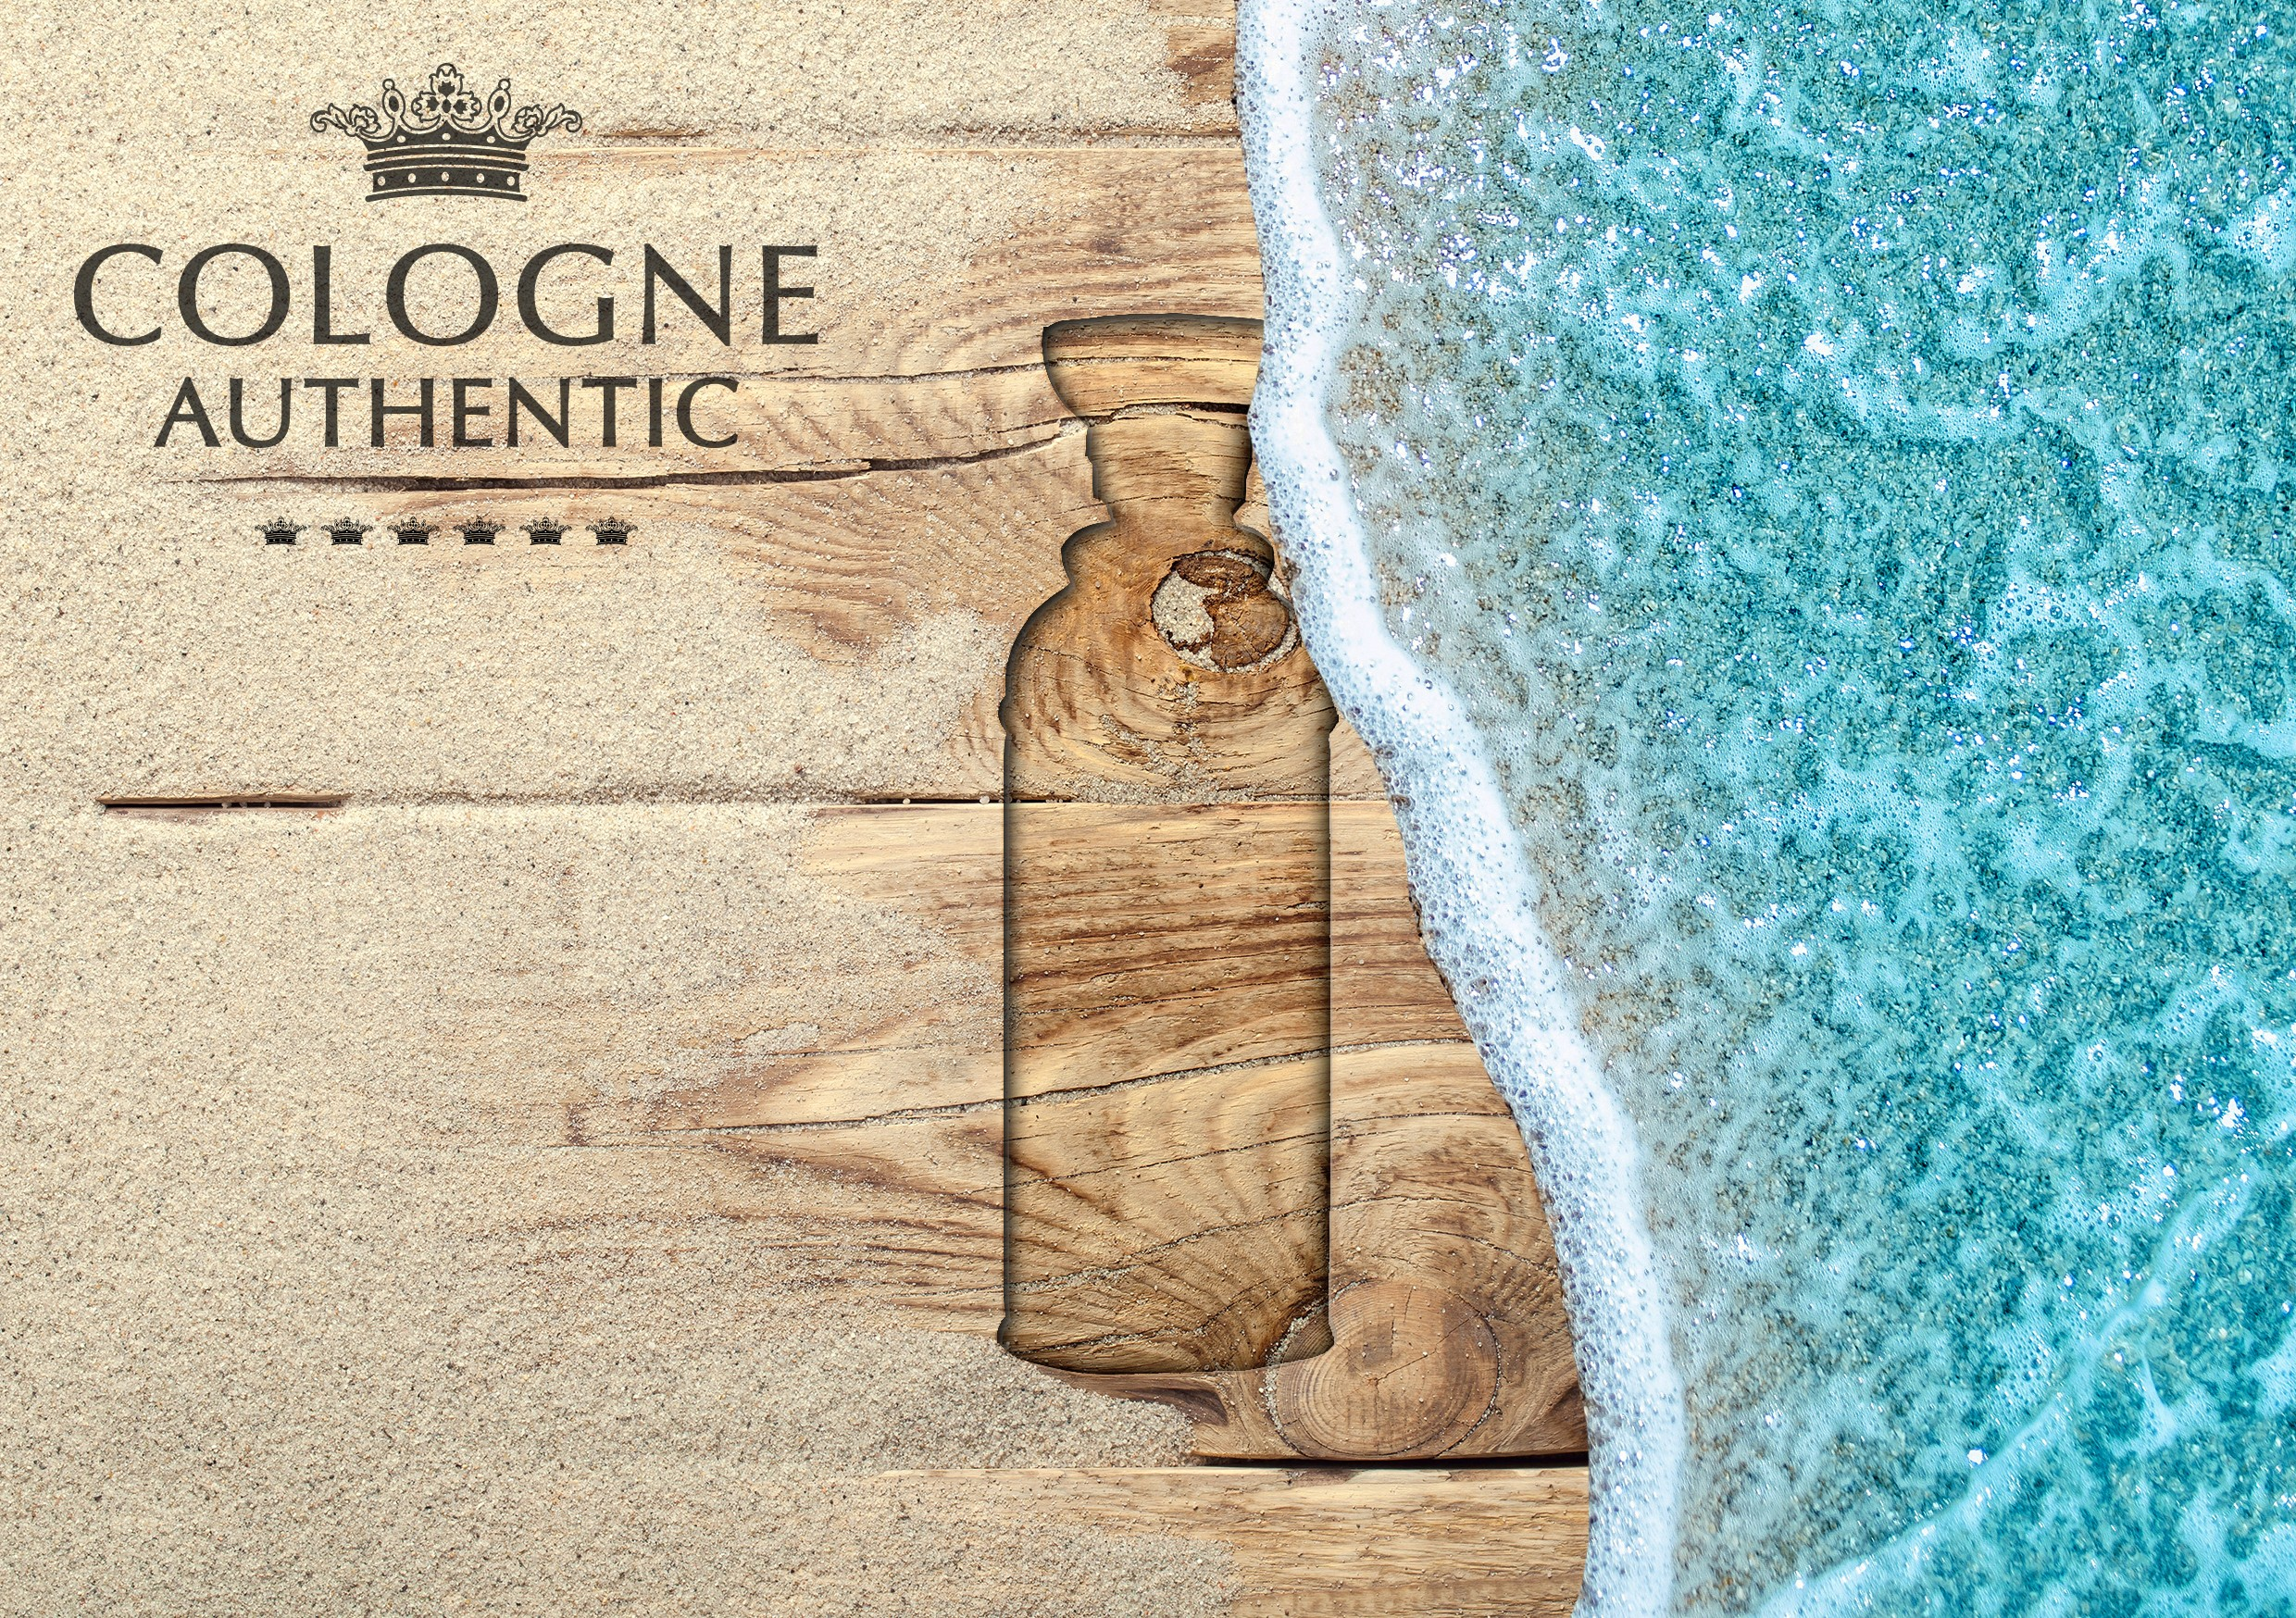 Les Cologne Authentic